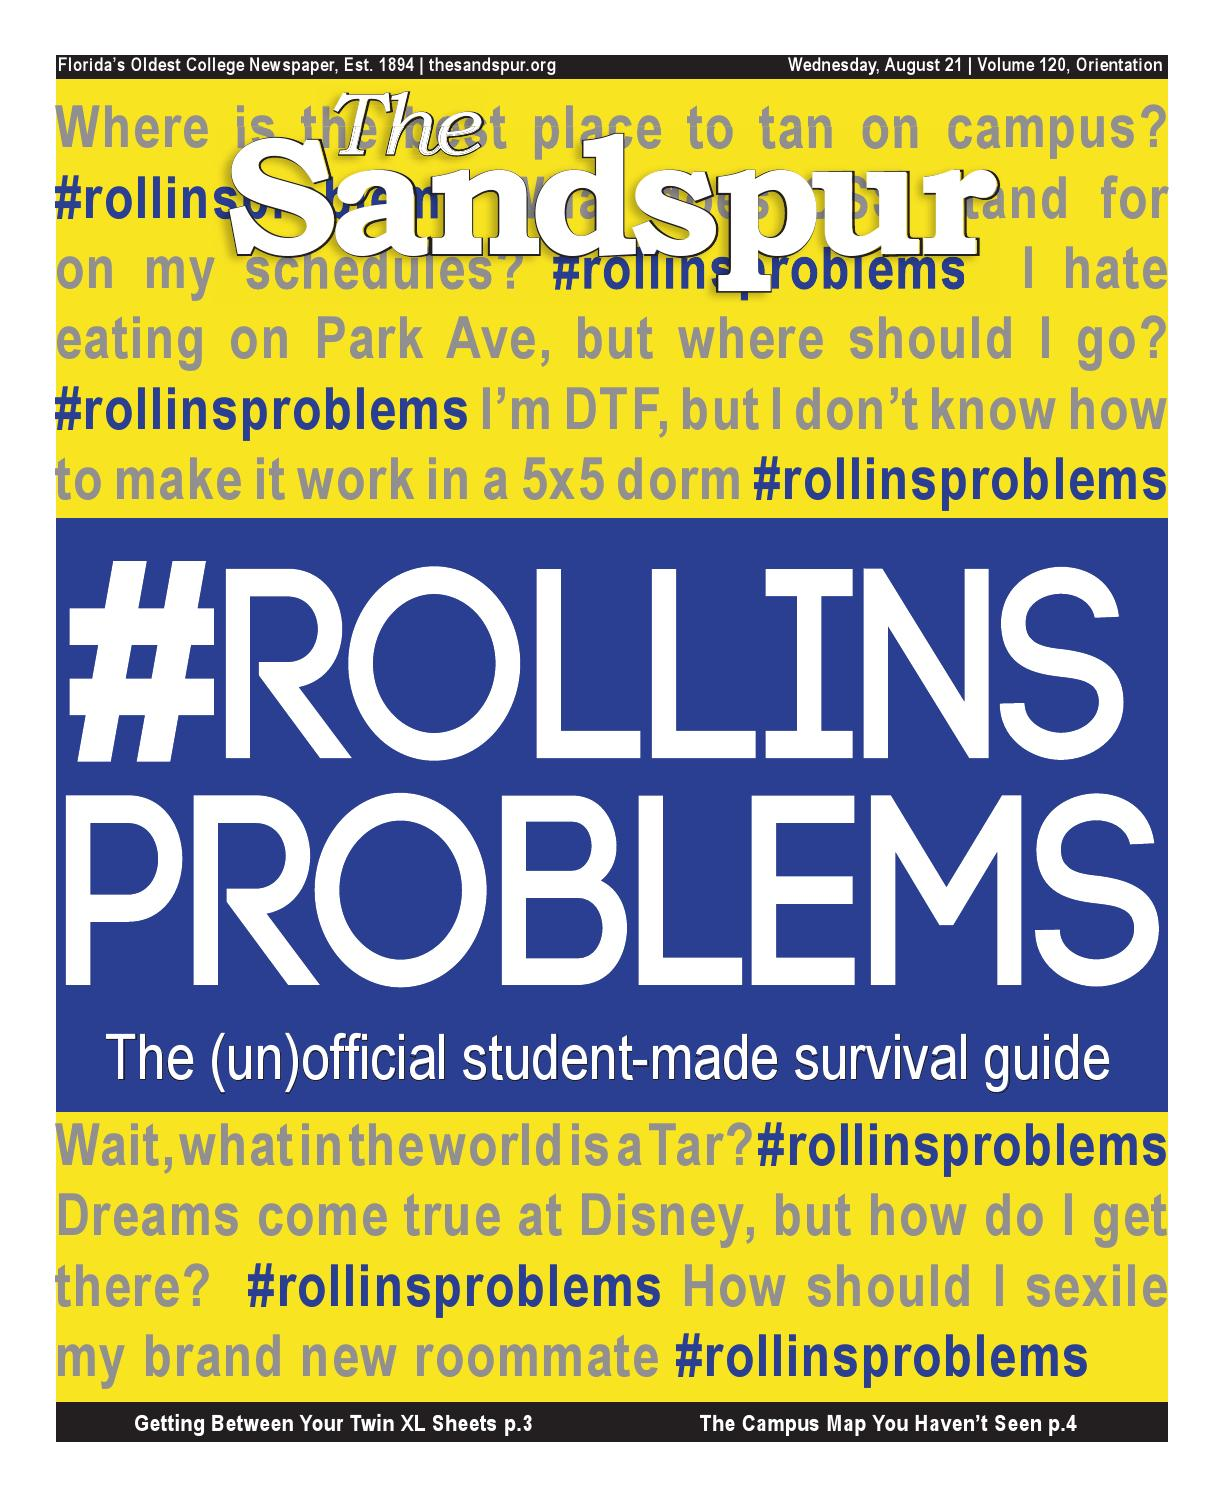 The Sandspur Volume 120 Orienation Issue By The Sandspur Issuu